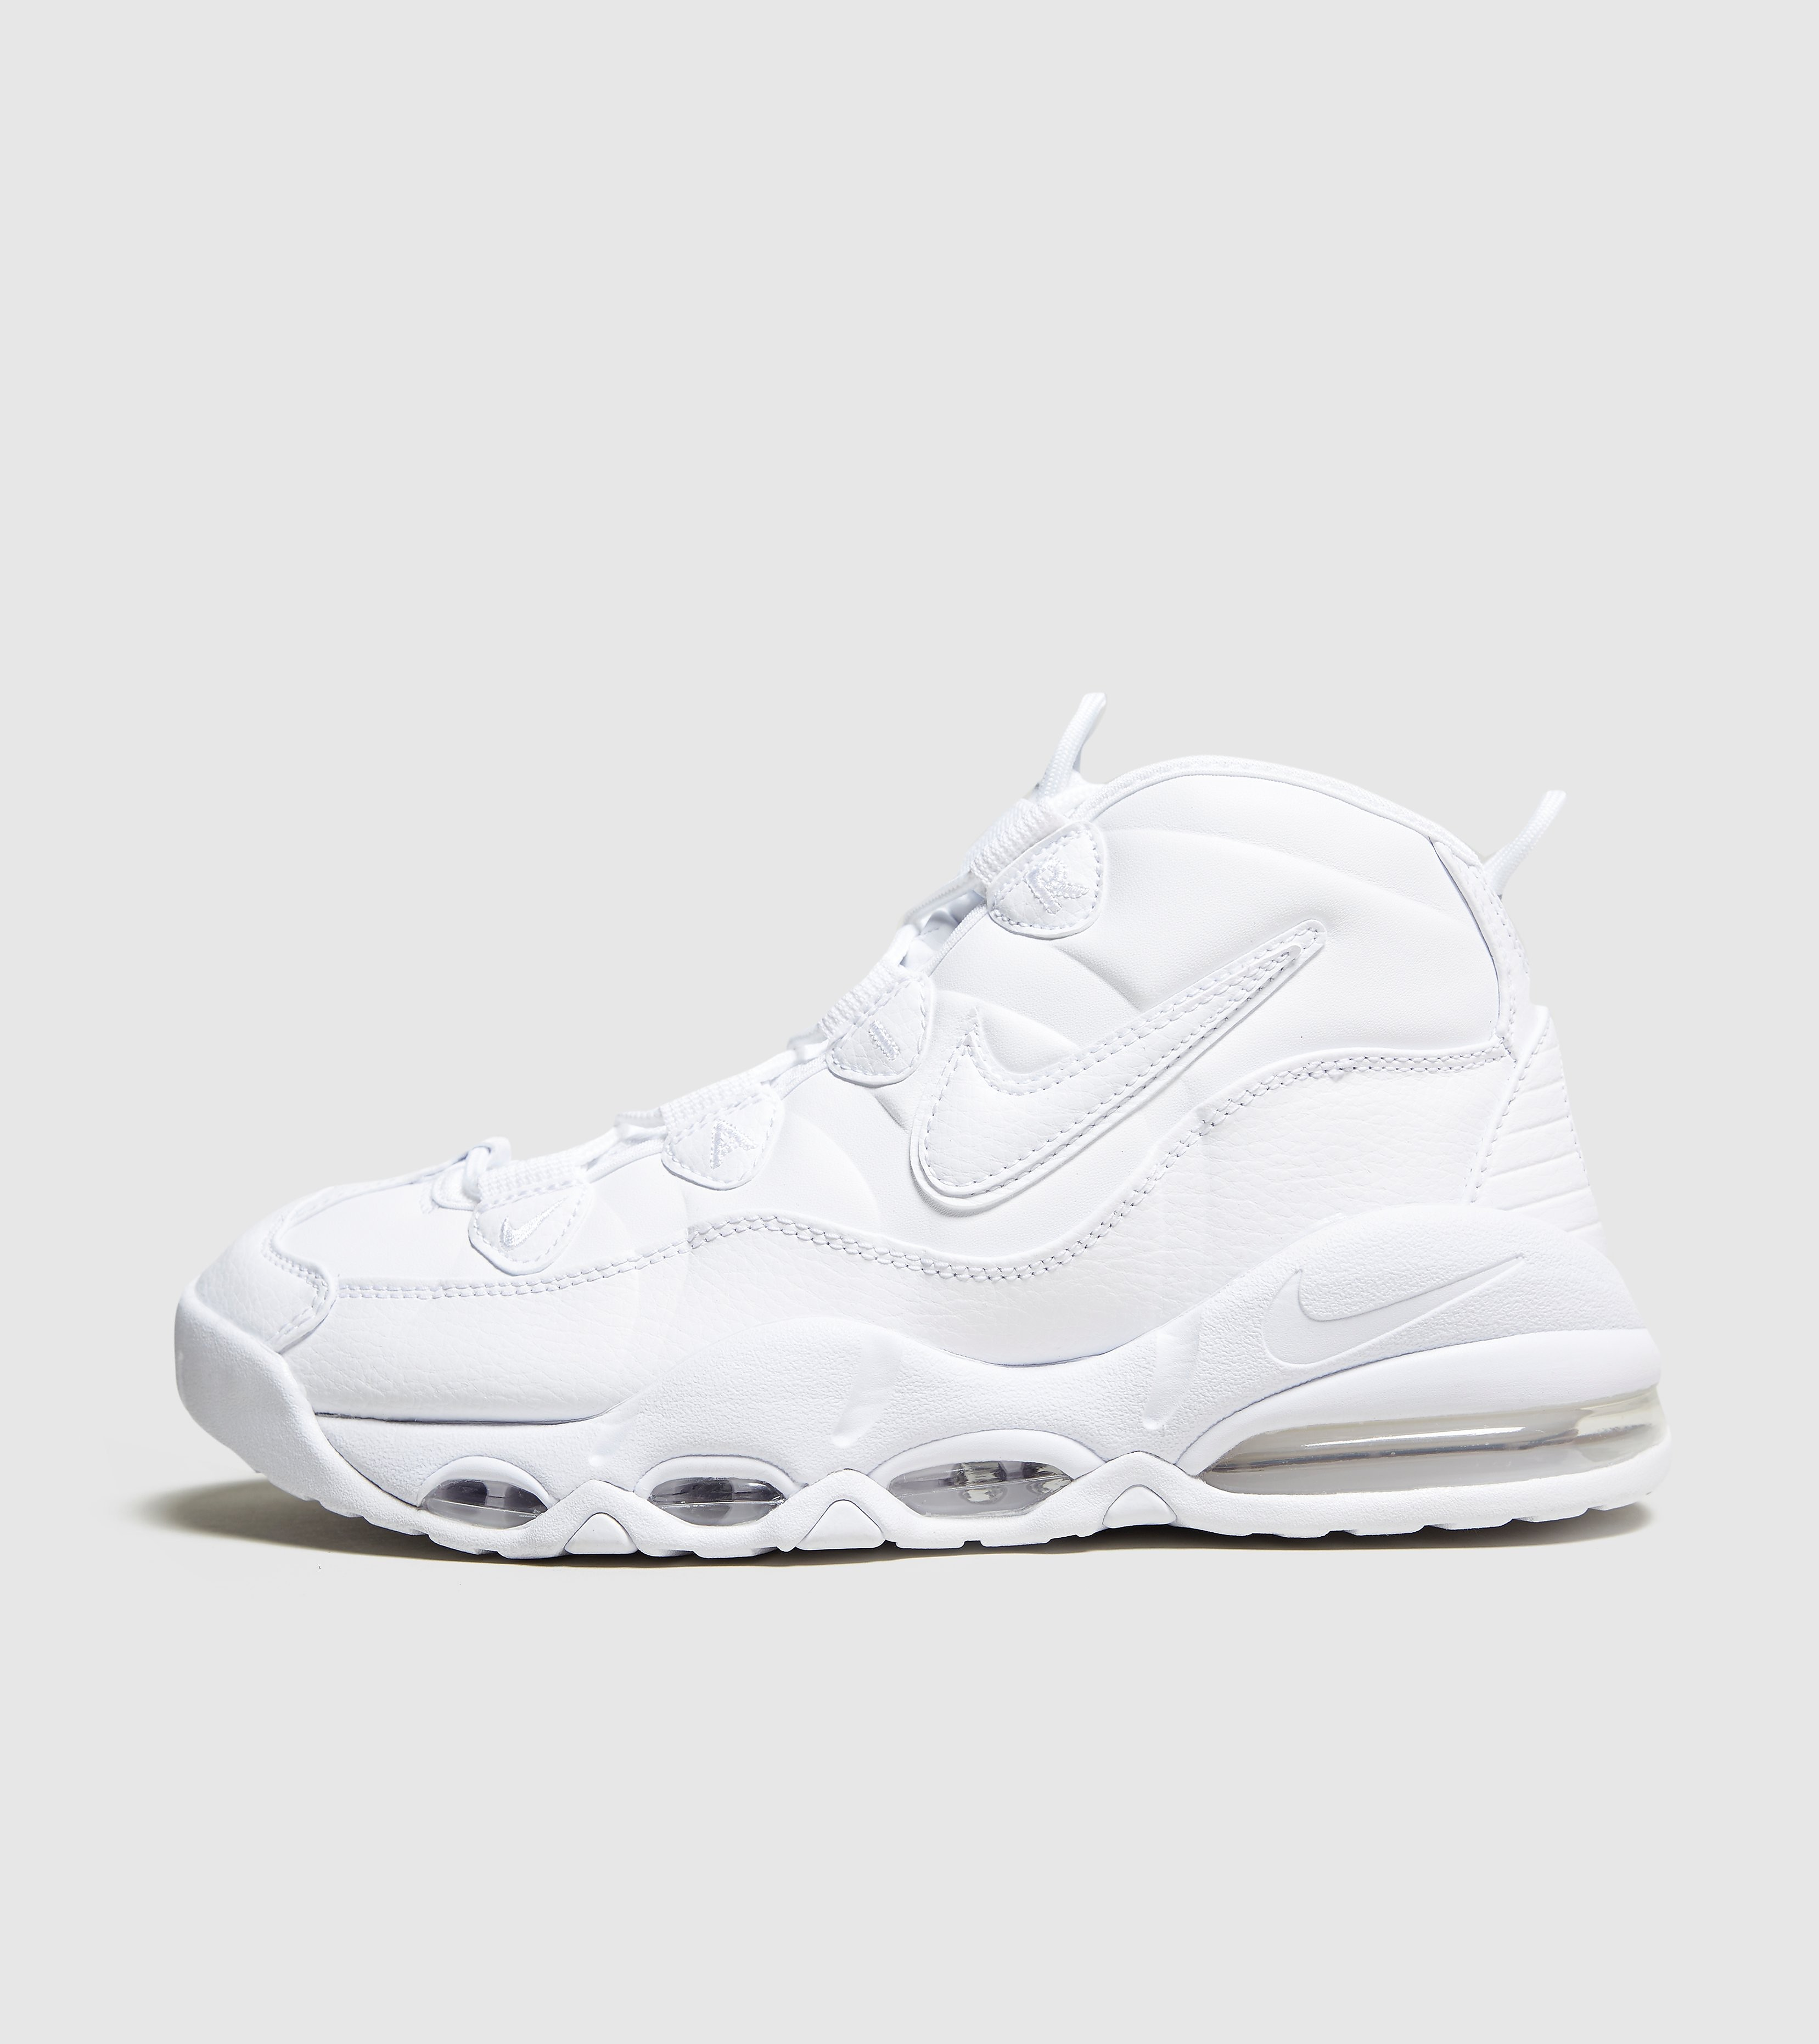 Nike Air Max Uptempo 95